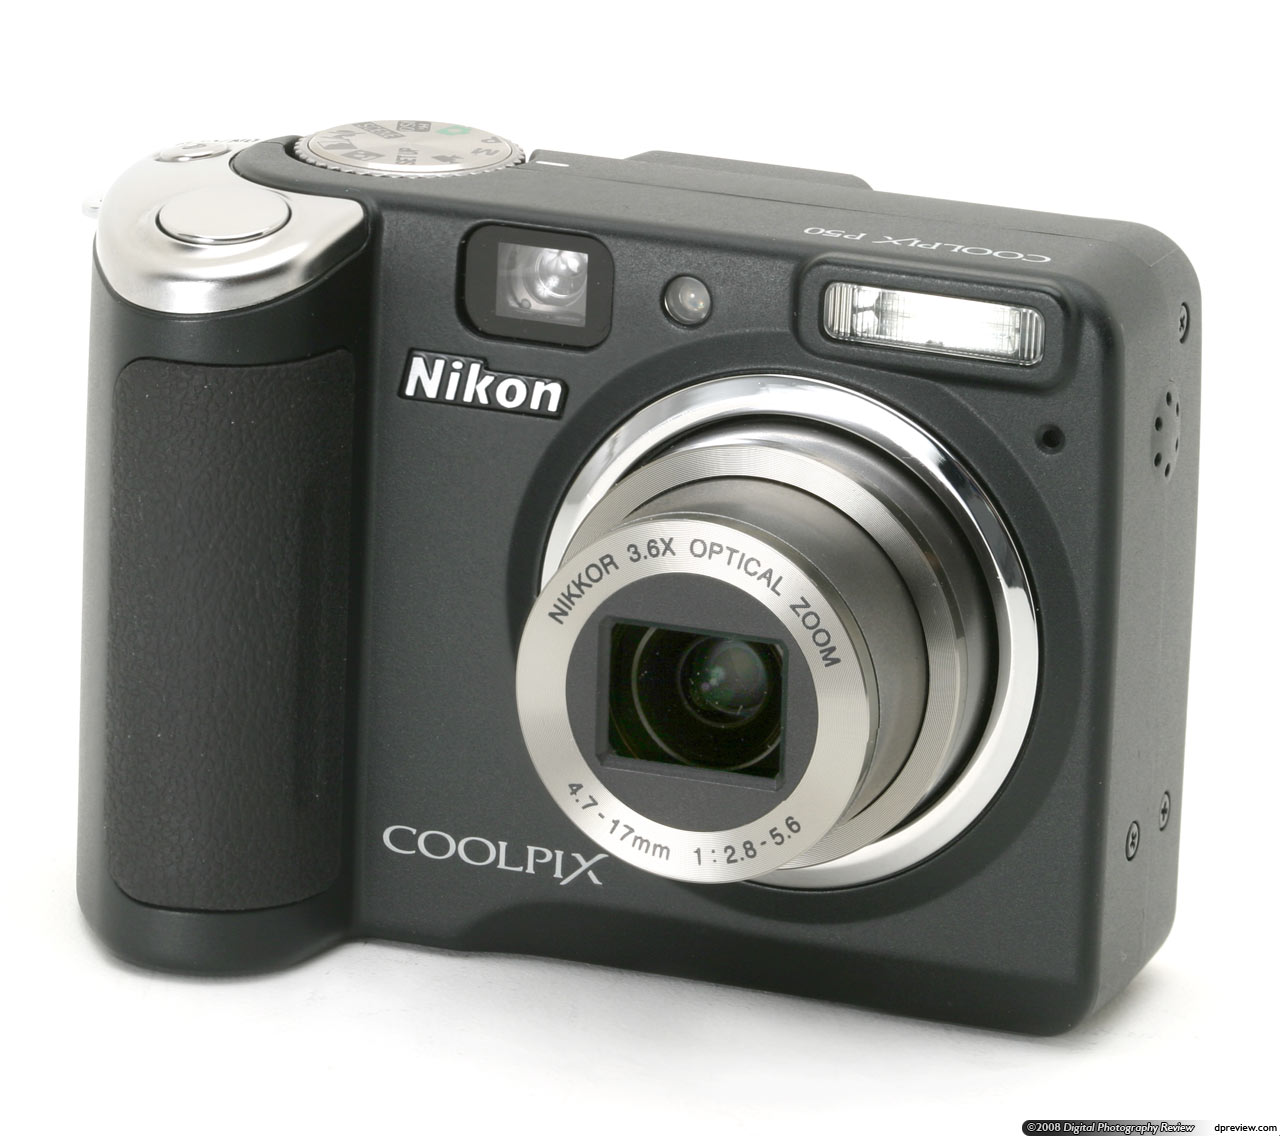 nikon coolpix p50 concise review digital photography review rh dpreview com nikon coolpix p50 manual pdf nikon coolpix p500 manual